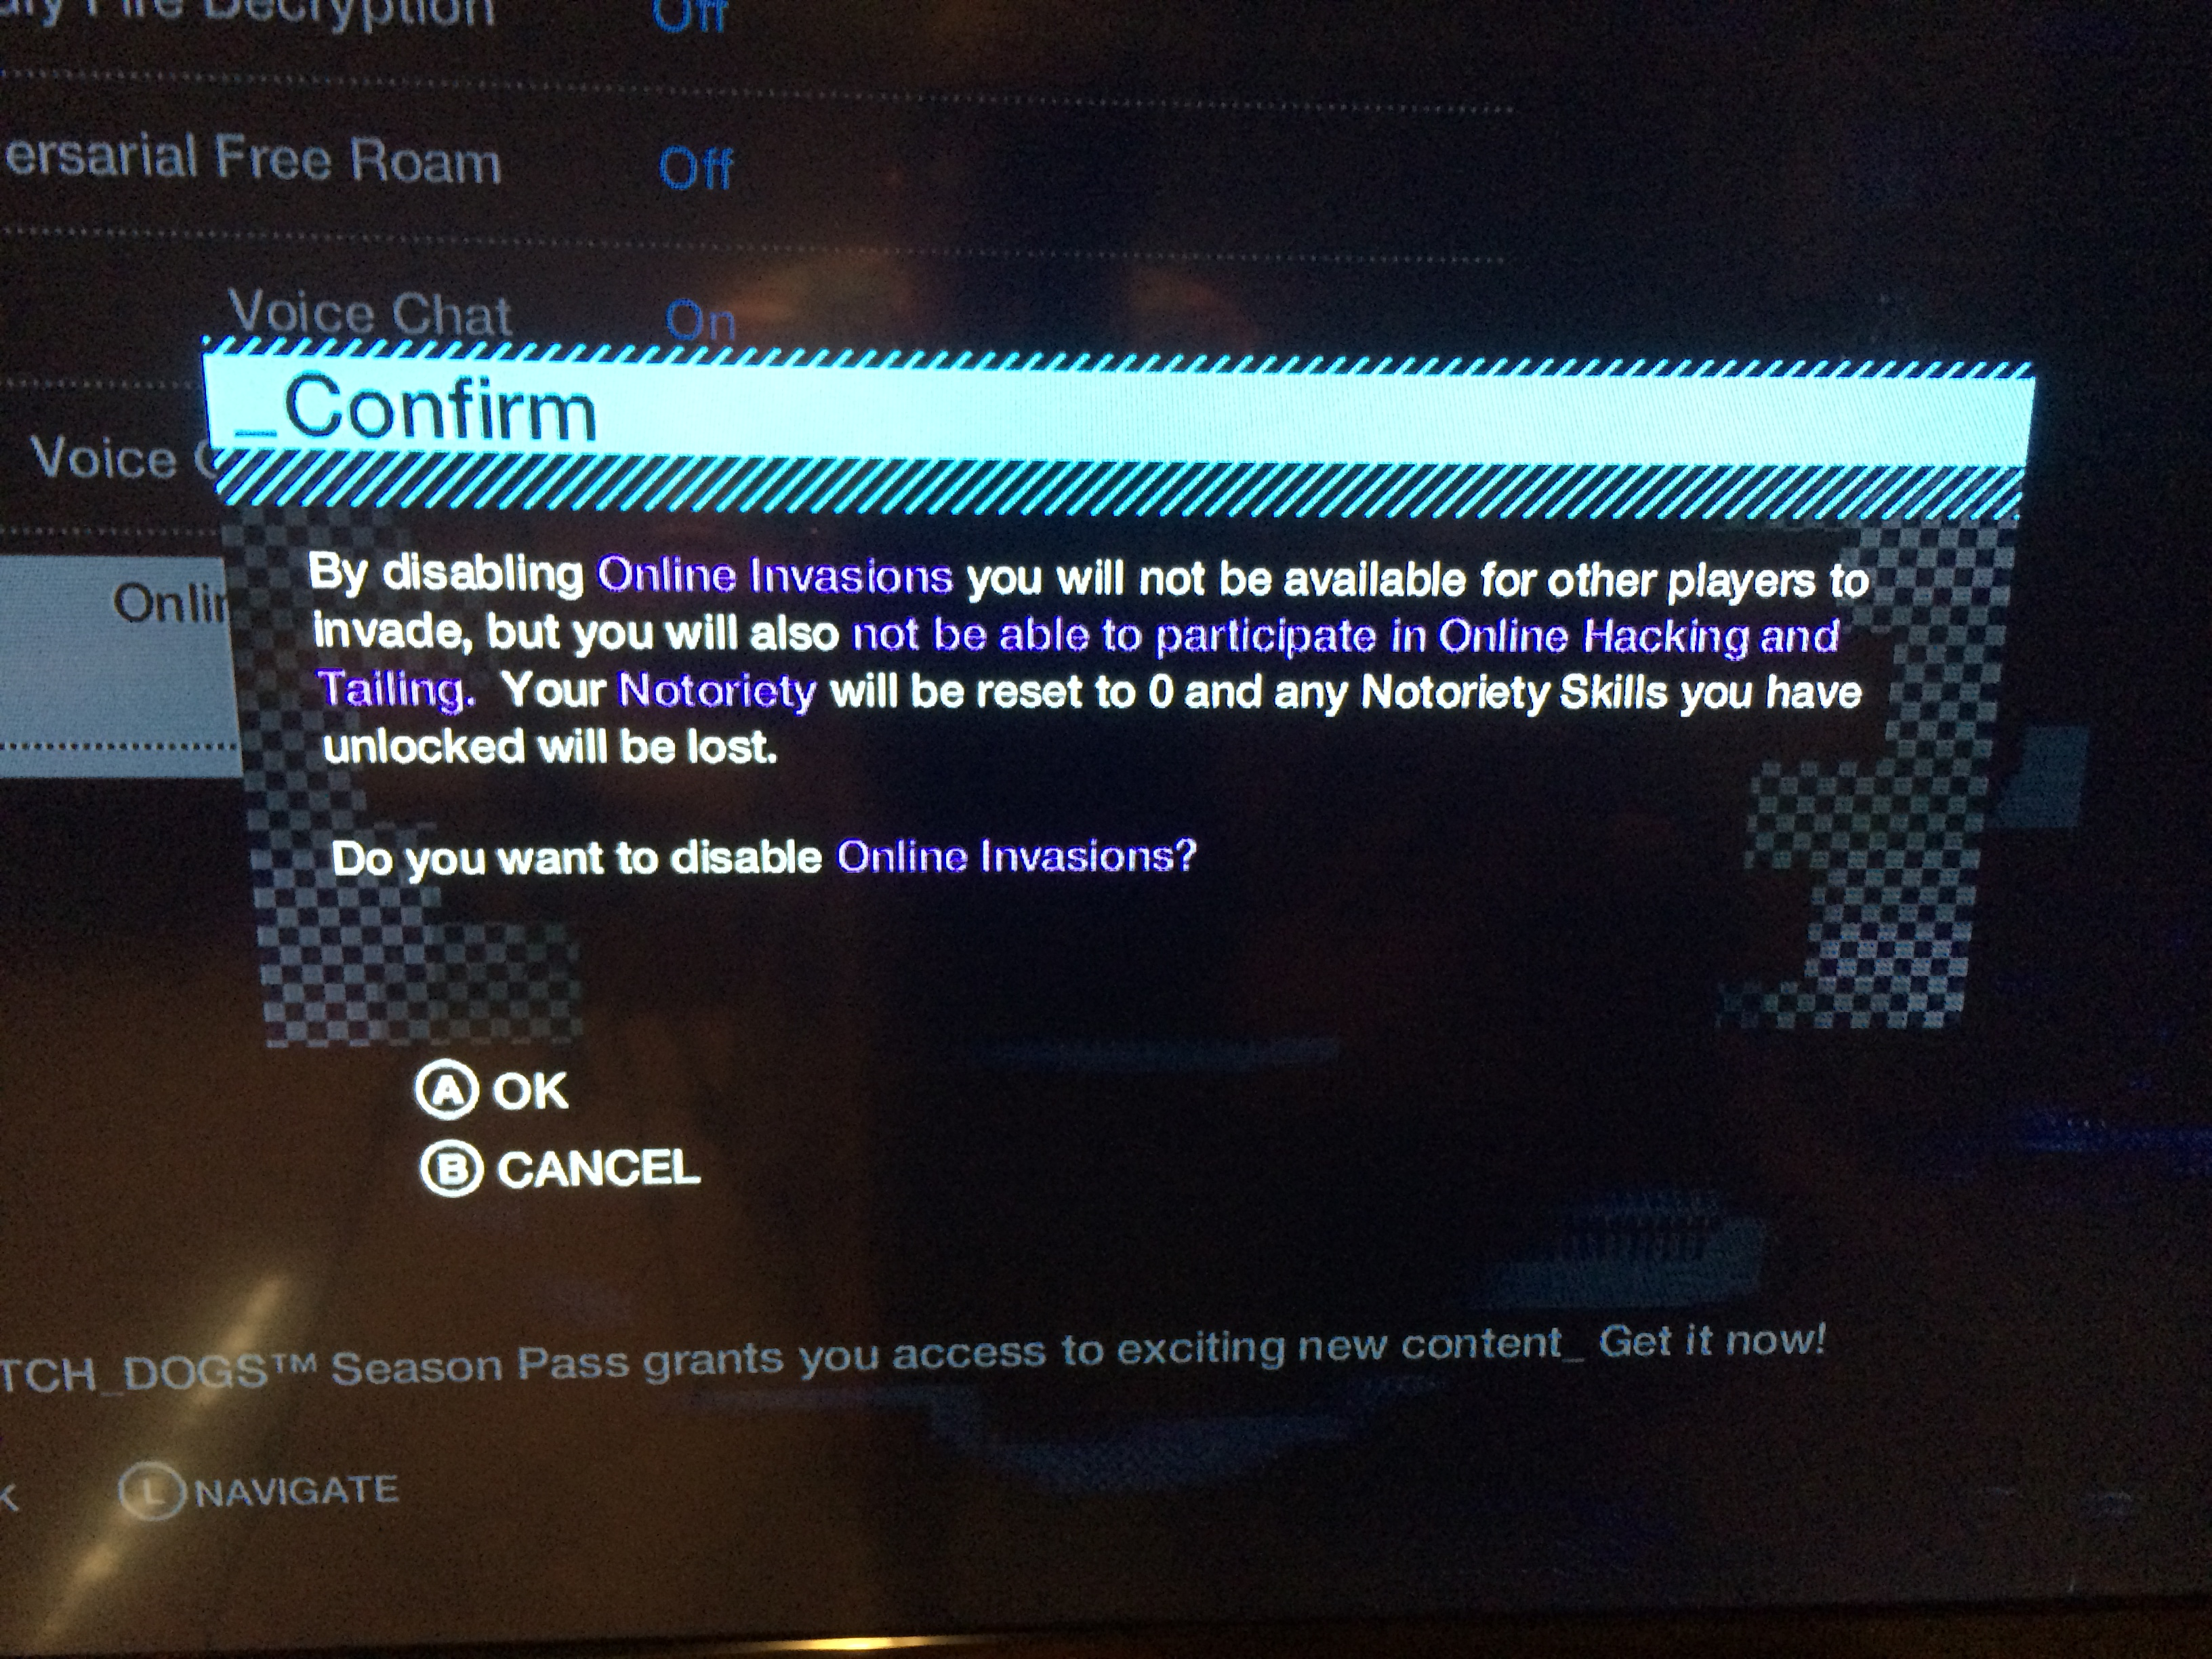 How to Turn Off Watch Dogs Multiplayer Hacking and Tailing